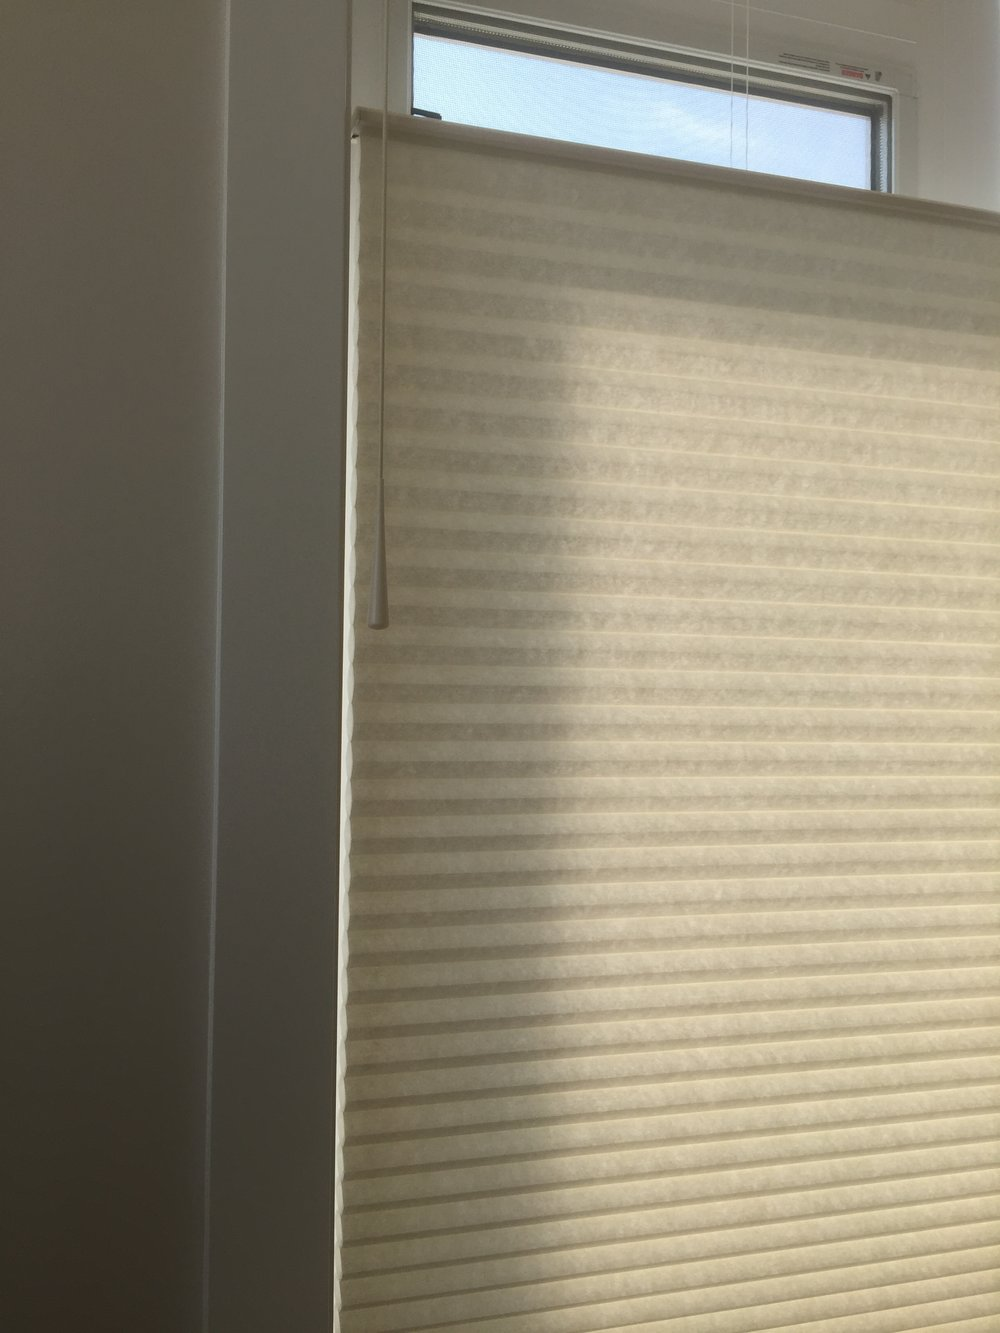 Here are some really nice blinds!